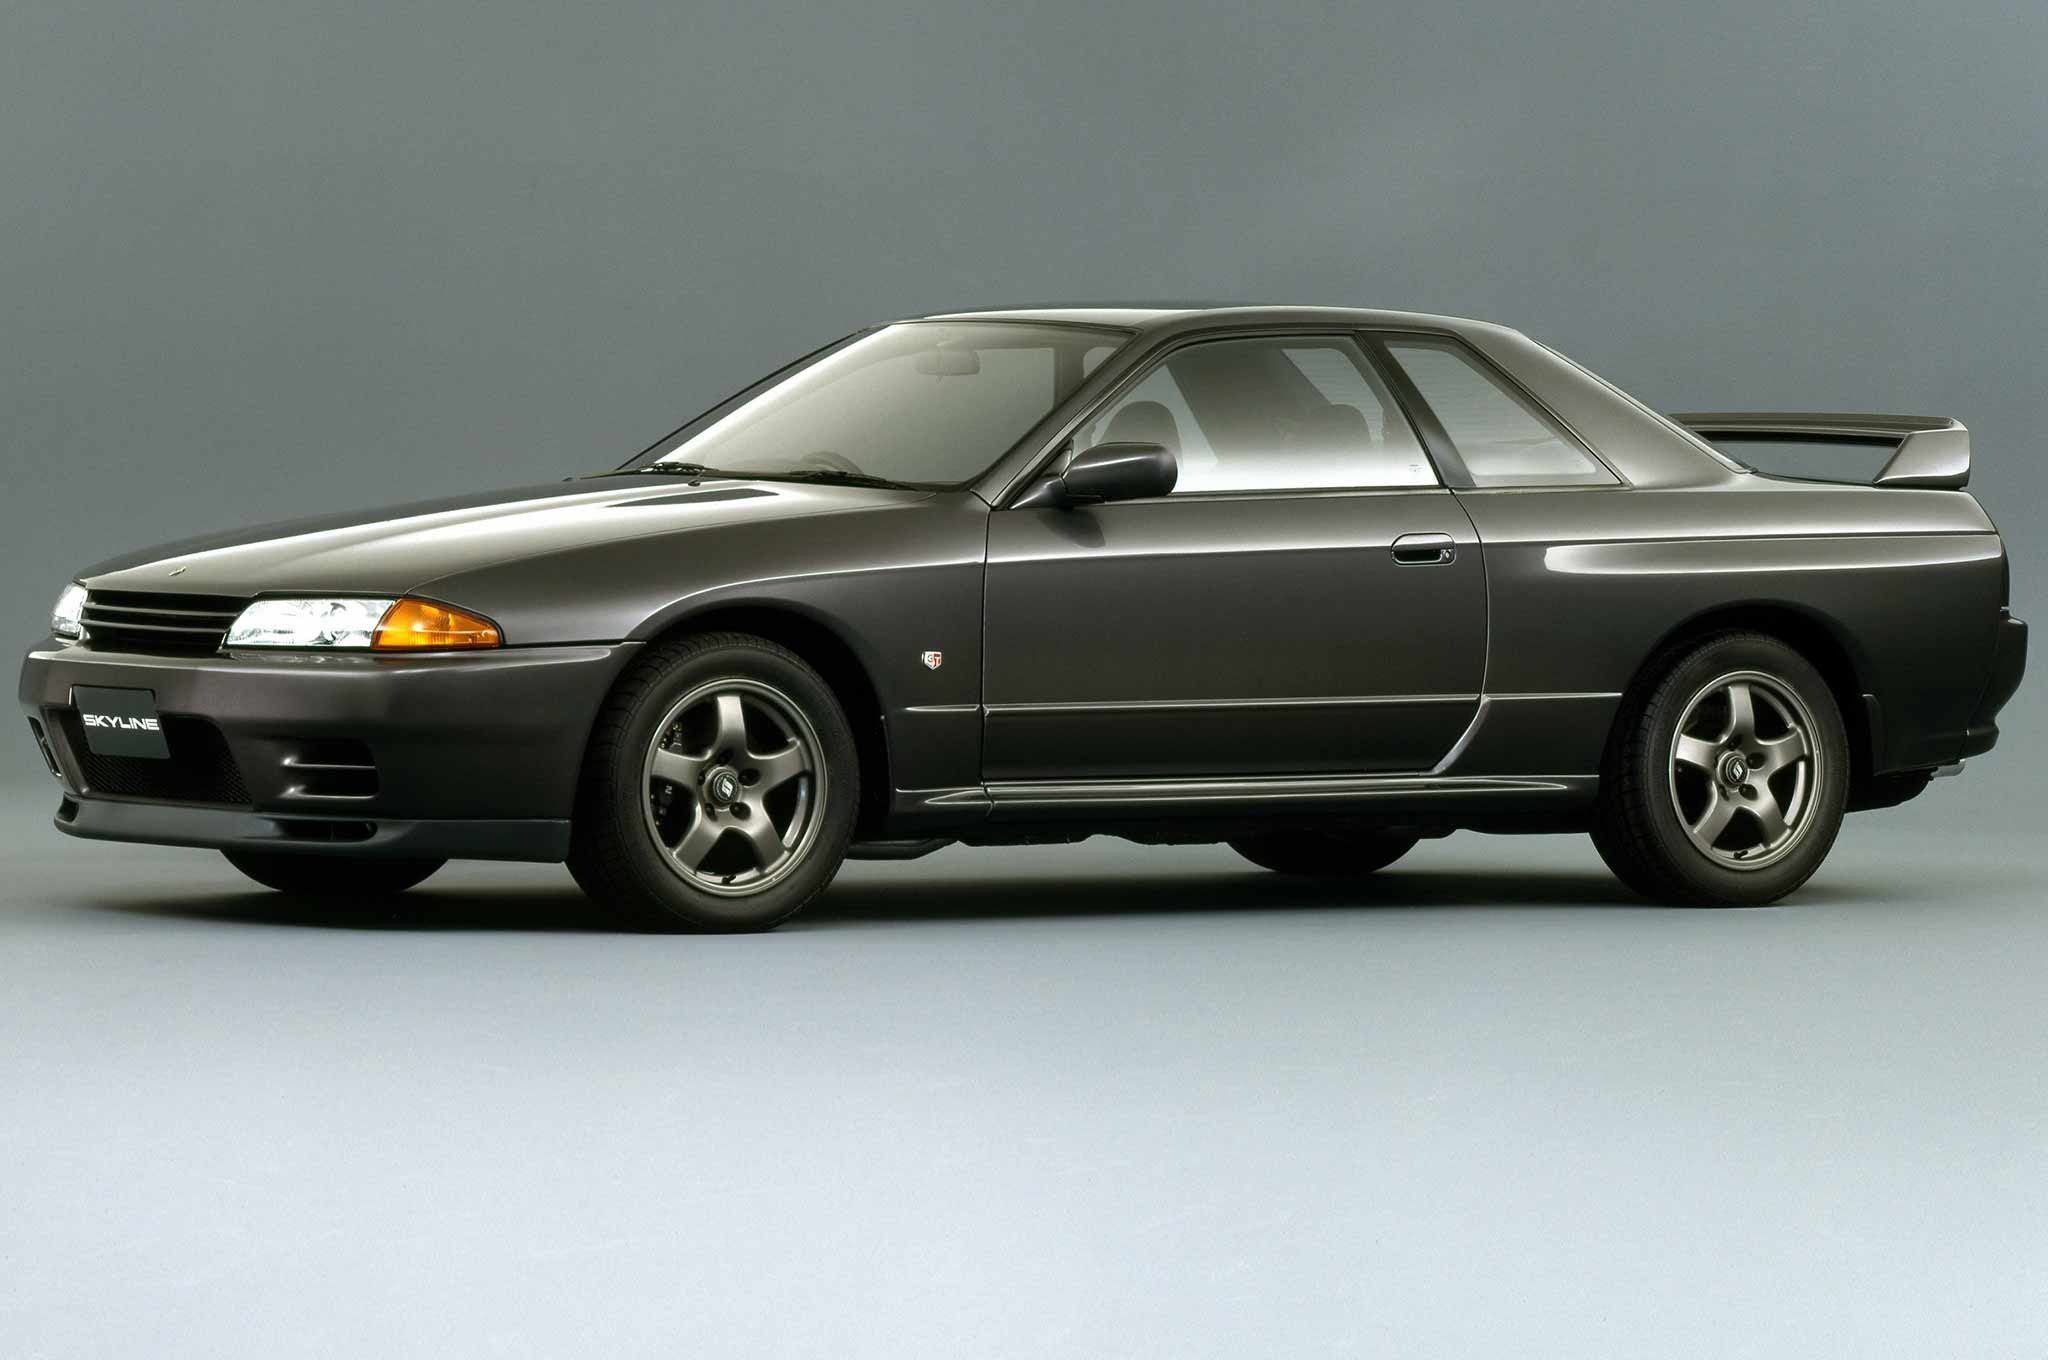 Nismo Heritage to Sell R32 Nissan Skyline GT-R Replacement ...